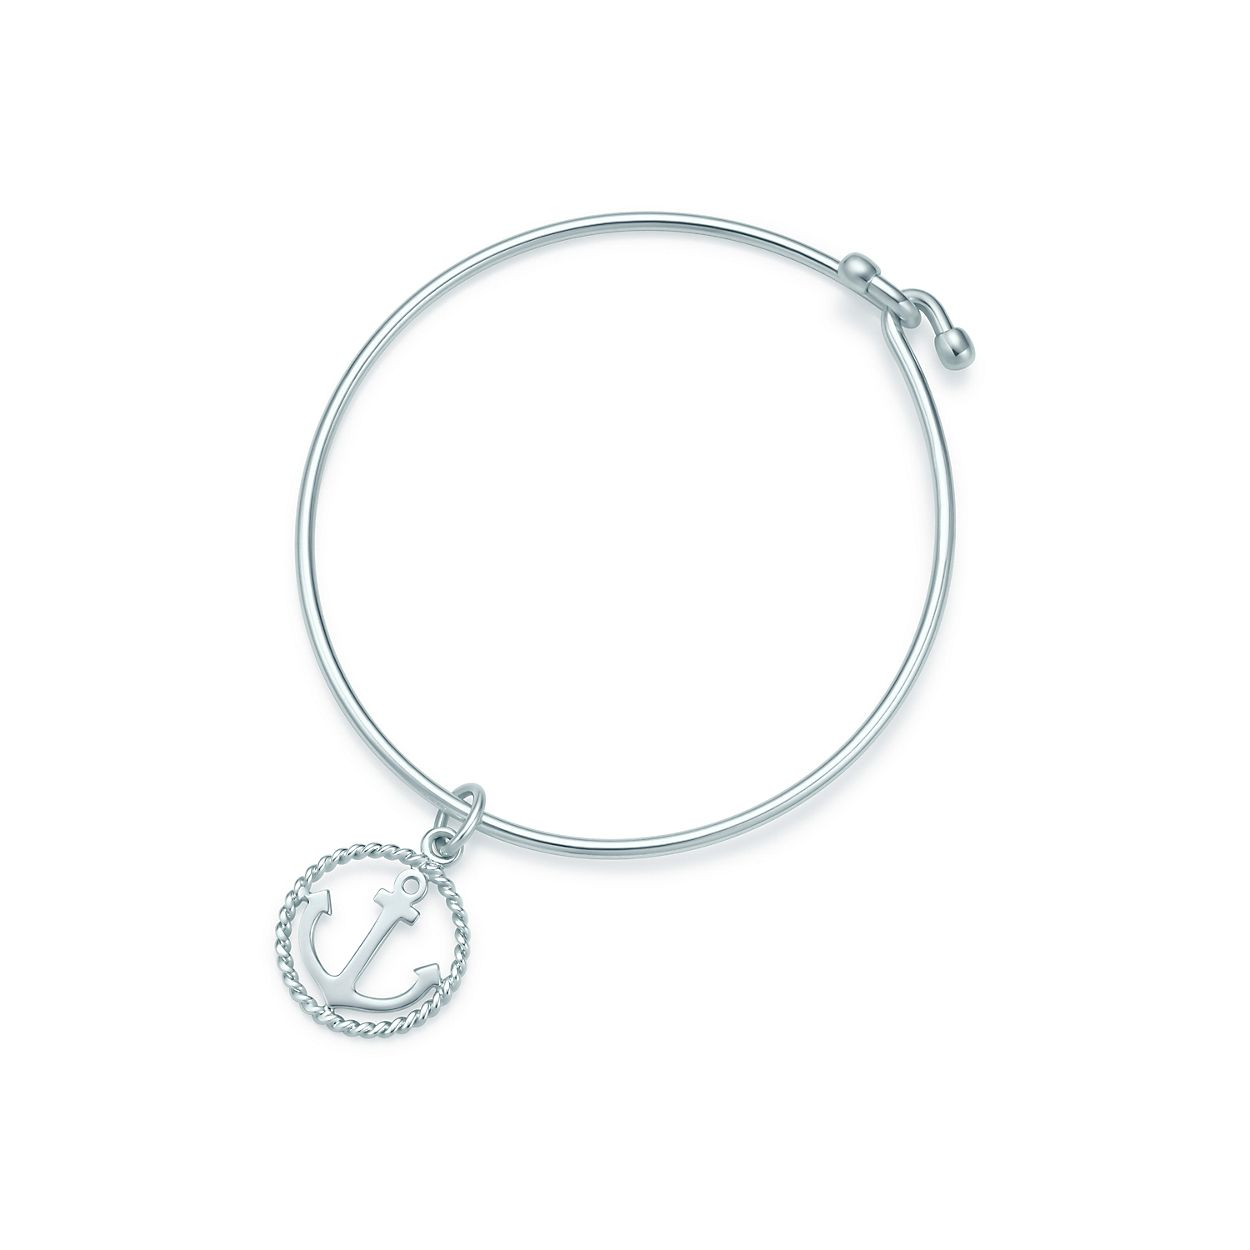 Tiffany Twist anchor charm in sterling silver on a bracelet ...